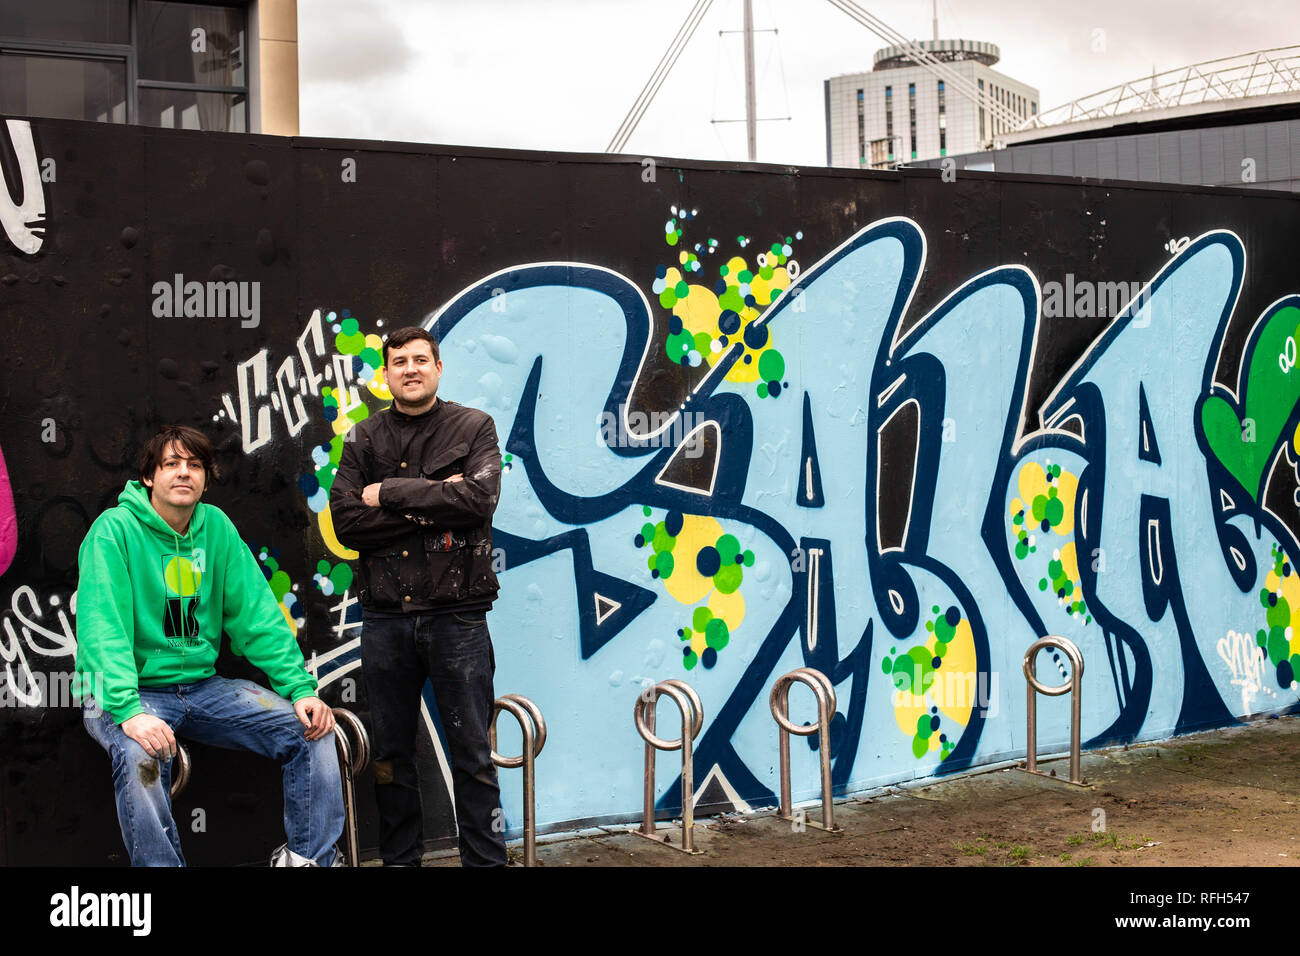 Cardiff, Wales, UK. 25th January 2019. Kieron and Scott of Church Street's Oner Signs, pose beside their graffiti artwork, which is a tribute to Emilano Sala - the football player who had just signed to Cardiff City Football Club but is now presumed dead after his flight from Nantes, France, had gone missing. © Amy Farrer Credit: Amy Farrer/Alamy Live News - Stock Image